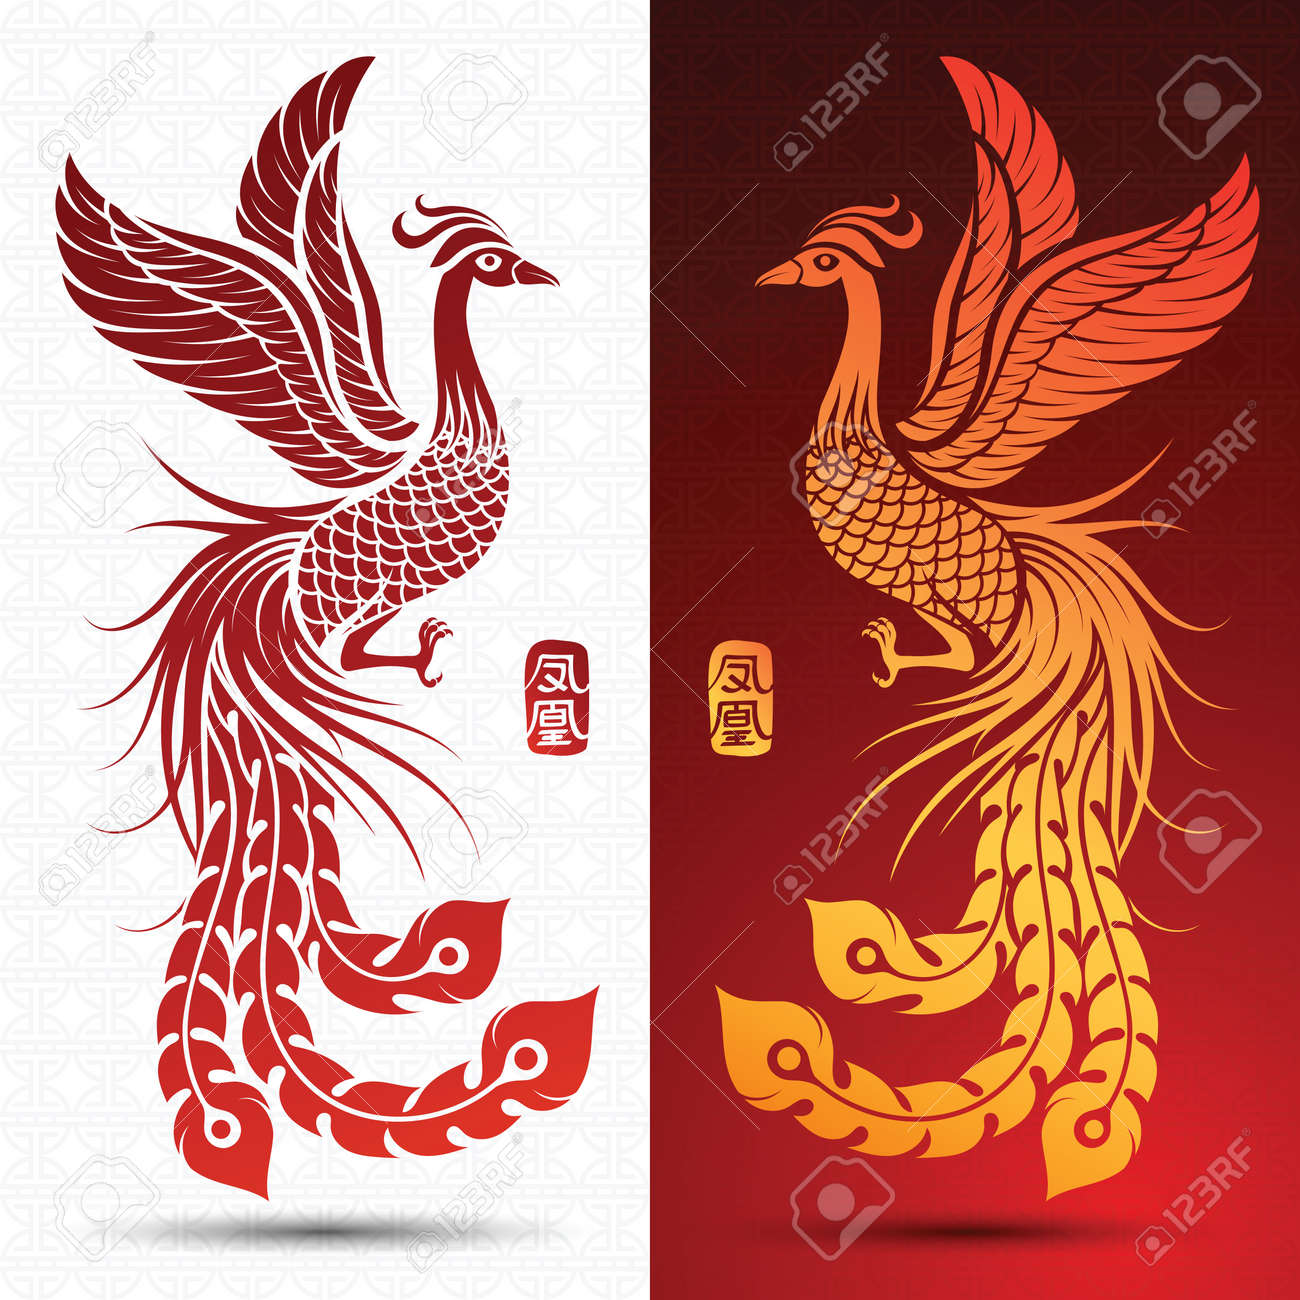 Illustration of Traditional Chinese phoenix ,illustration,Letters that phoenix - 64570626